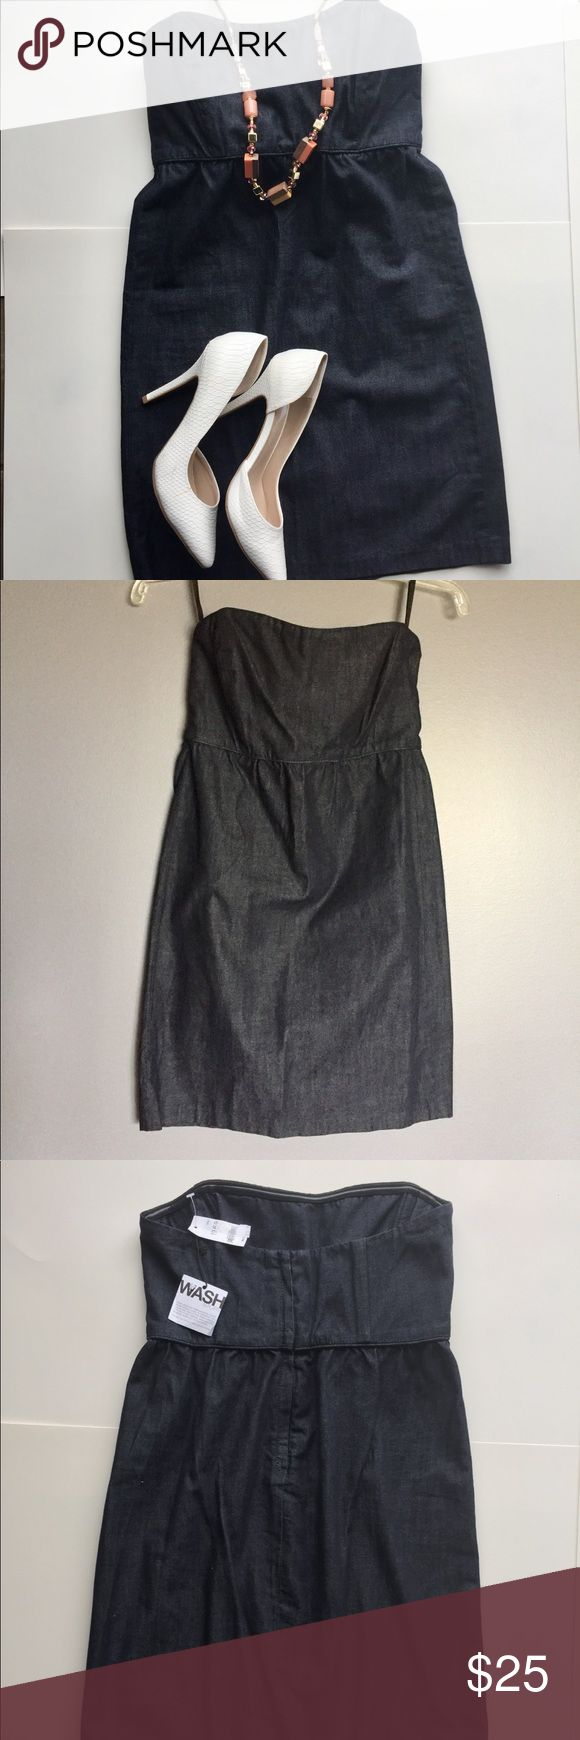 GAP Blue Mini Tube Denim Dress size 0 Elegant GAP mini tube denim dress. Size 0. Easy to look very chic in this dress with heels or flats and the right accessories. Bundle and save! GAP Dresses Mini